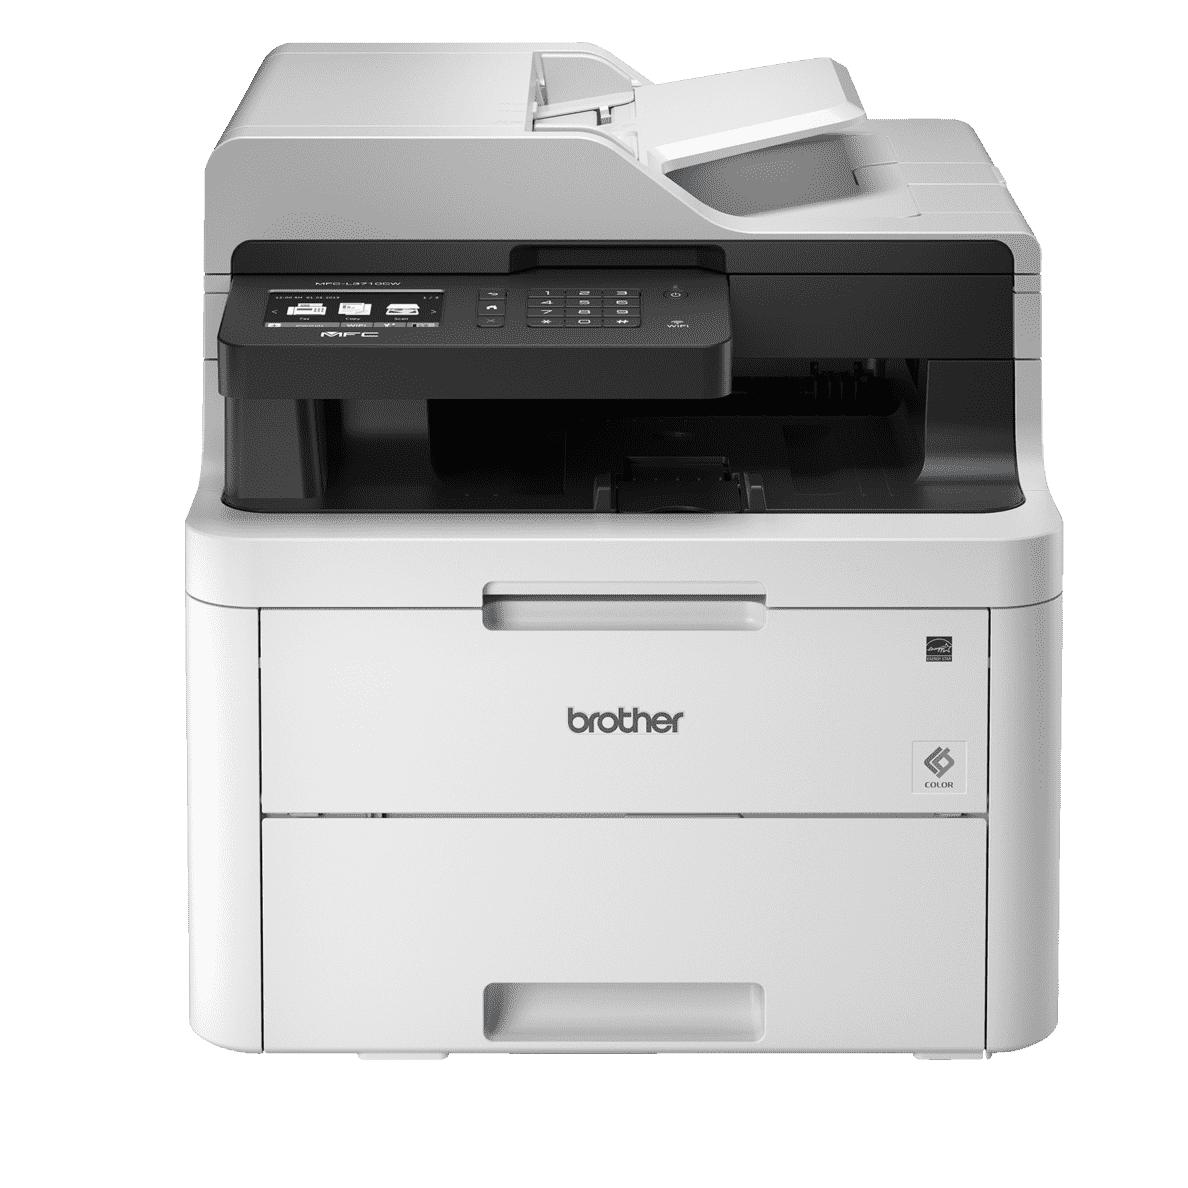 BROTHER MFC-L3710CW 4-in-1 Laser-Multifunktionsdrucker (Farbe) in Schwarz